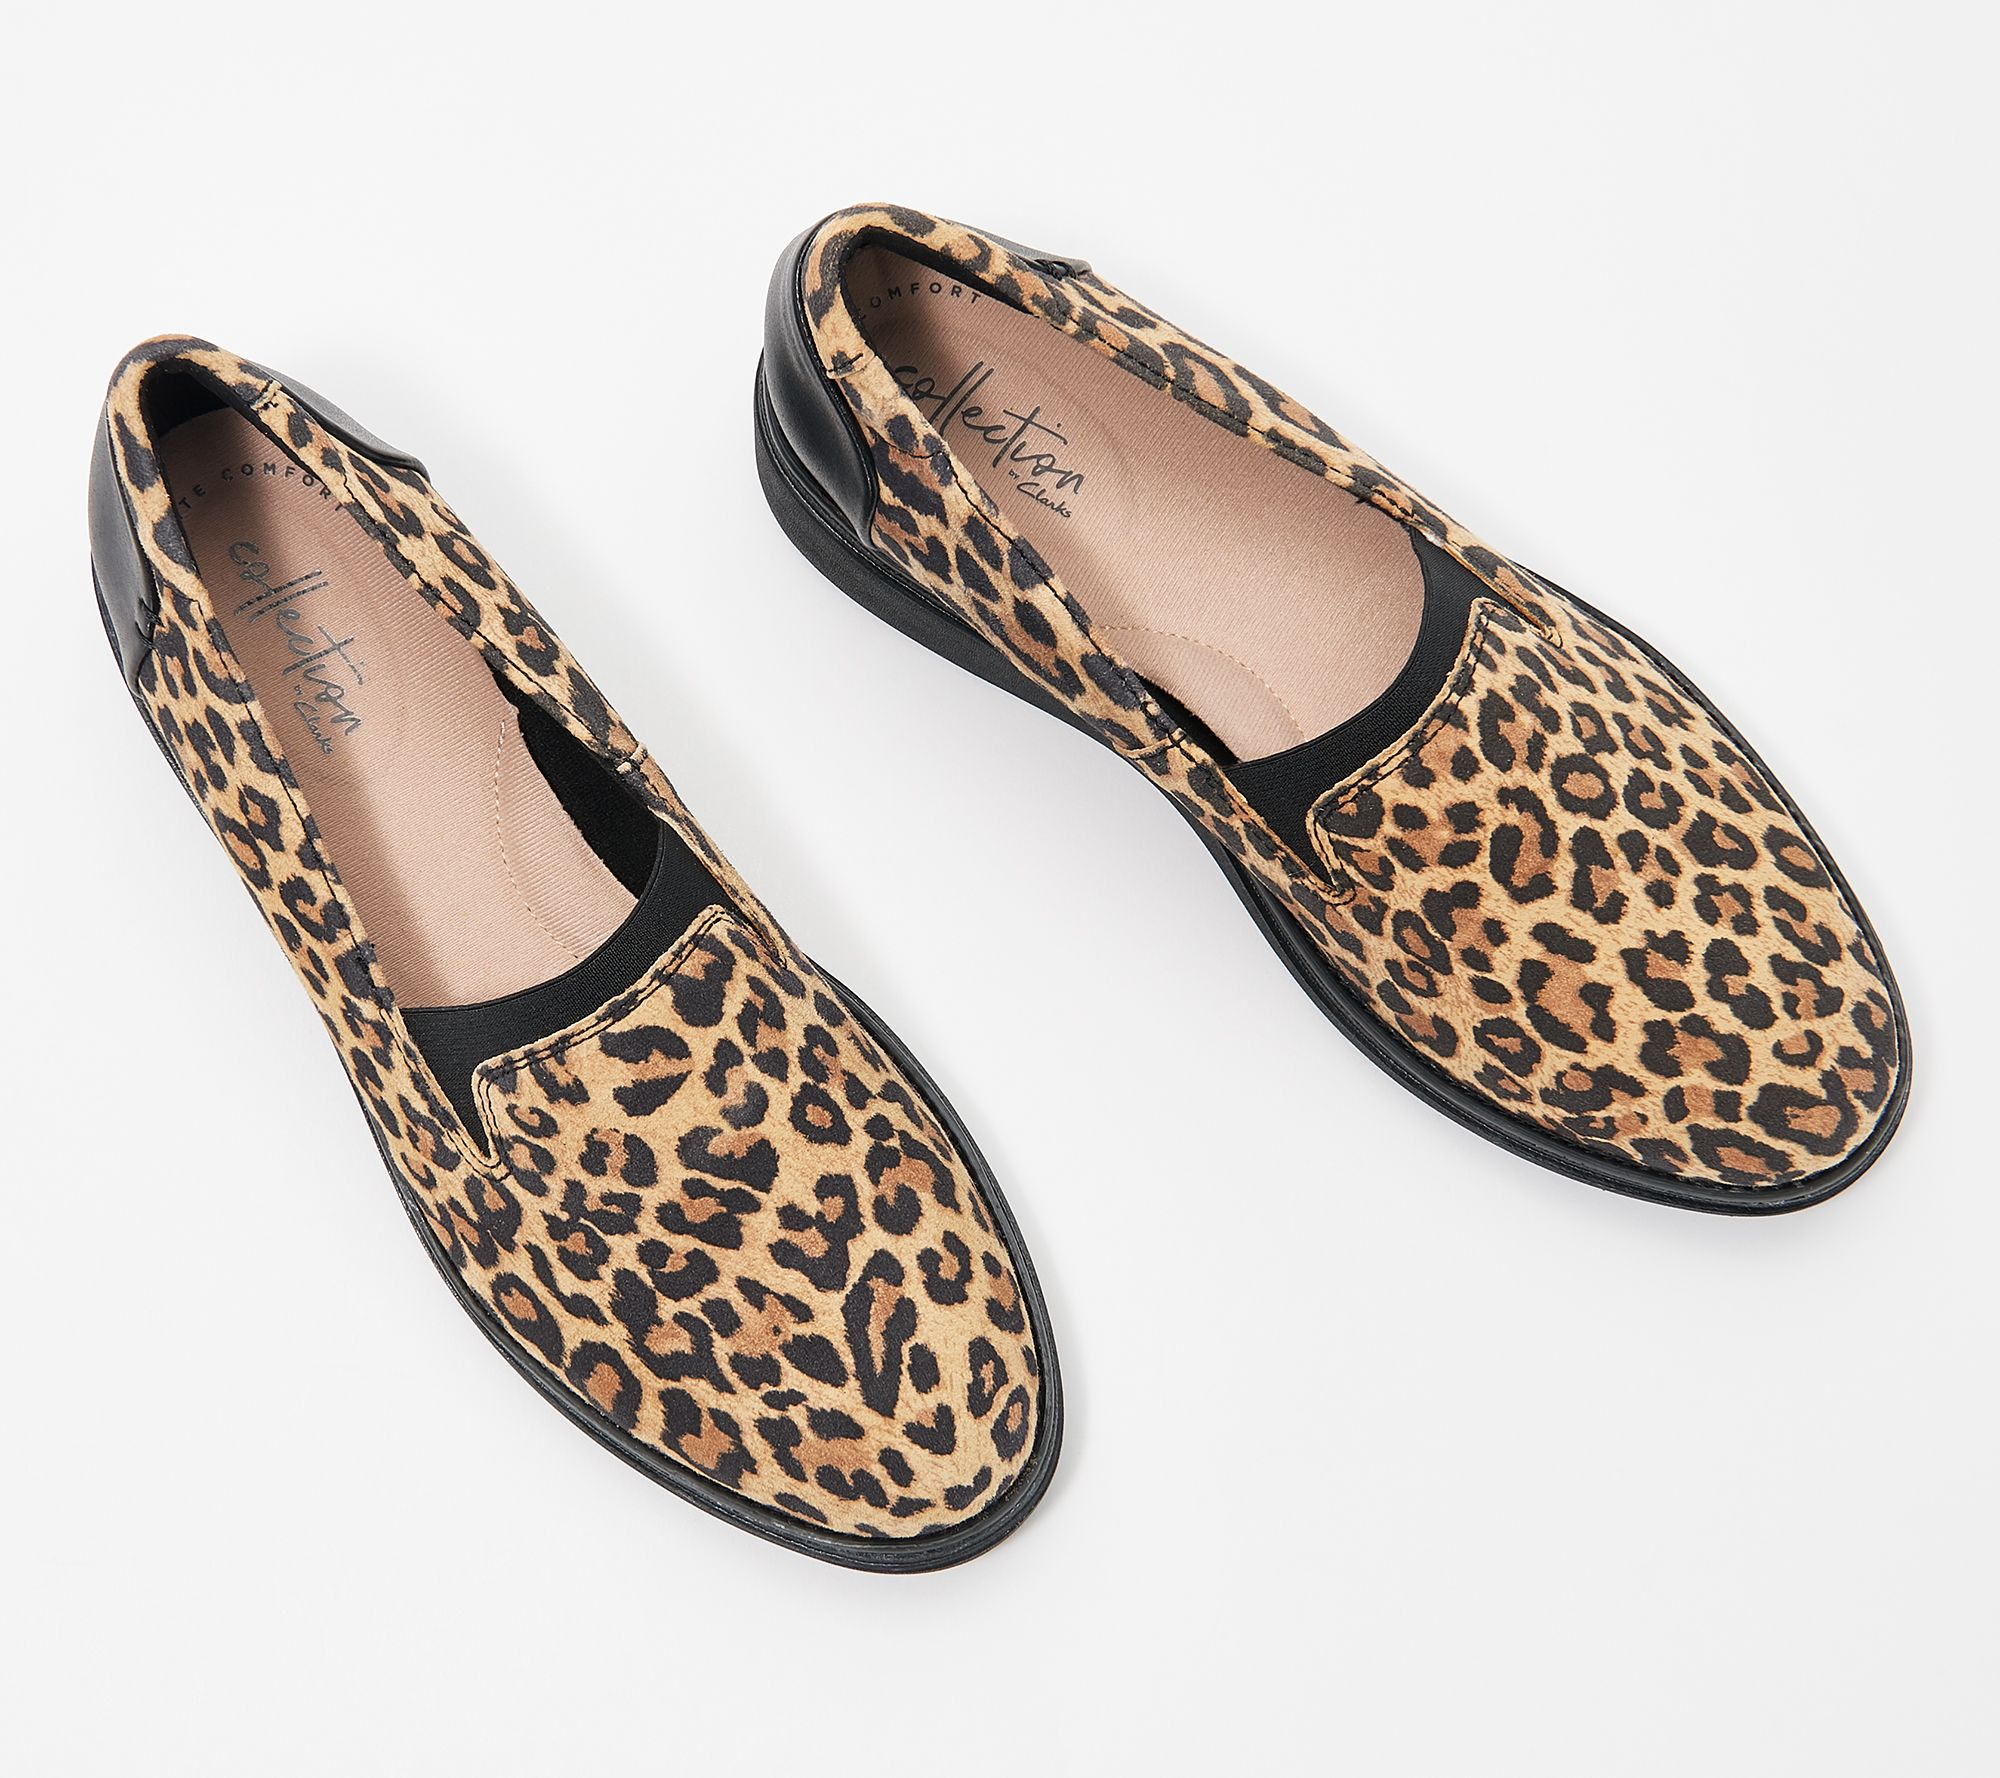 dba44c2b253 Clarks Suede Slip-On Loafers - Sharon Dolly - Page 1 — QVC.com